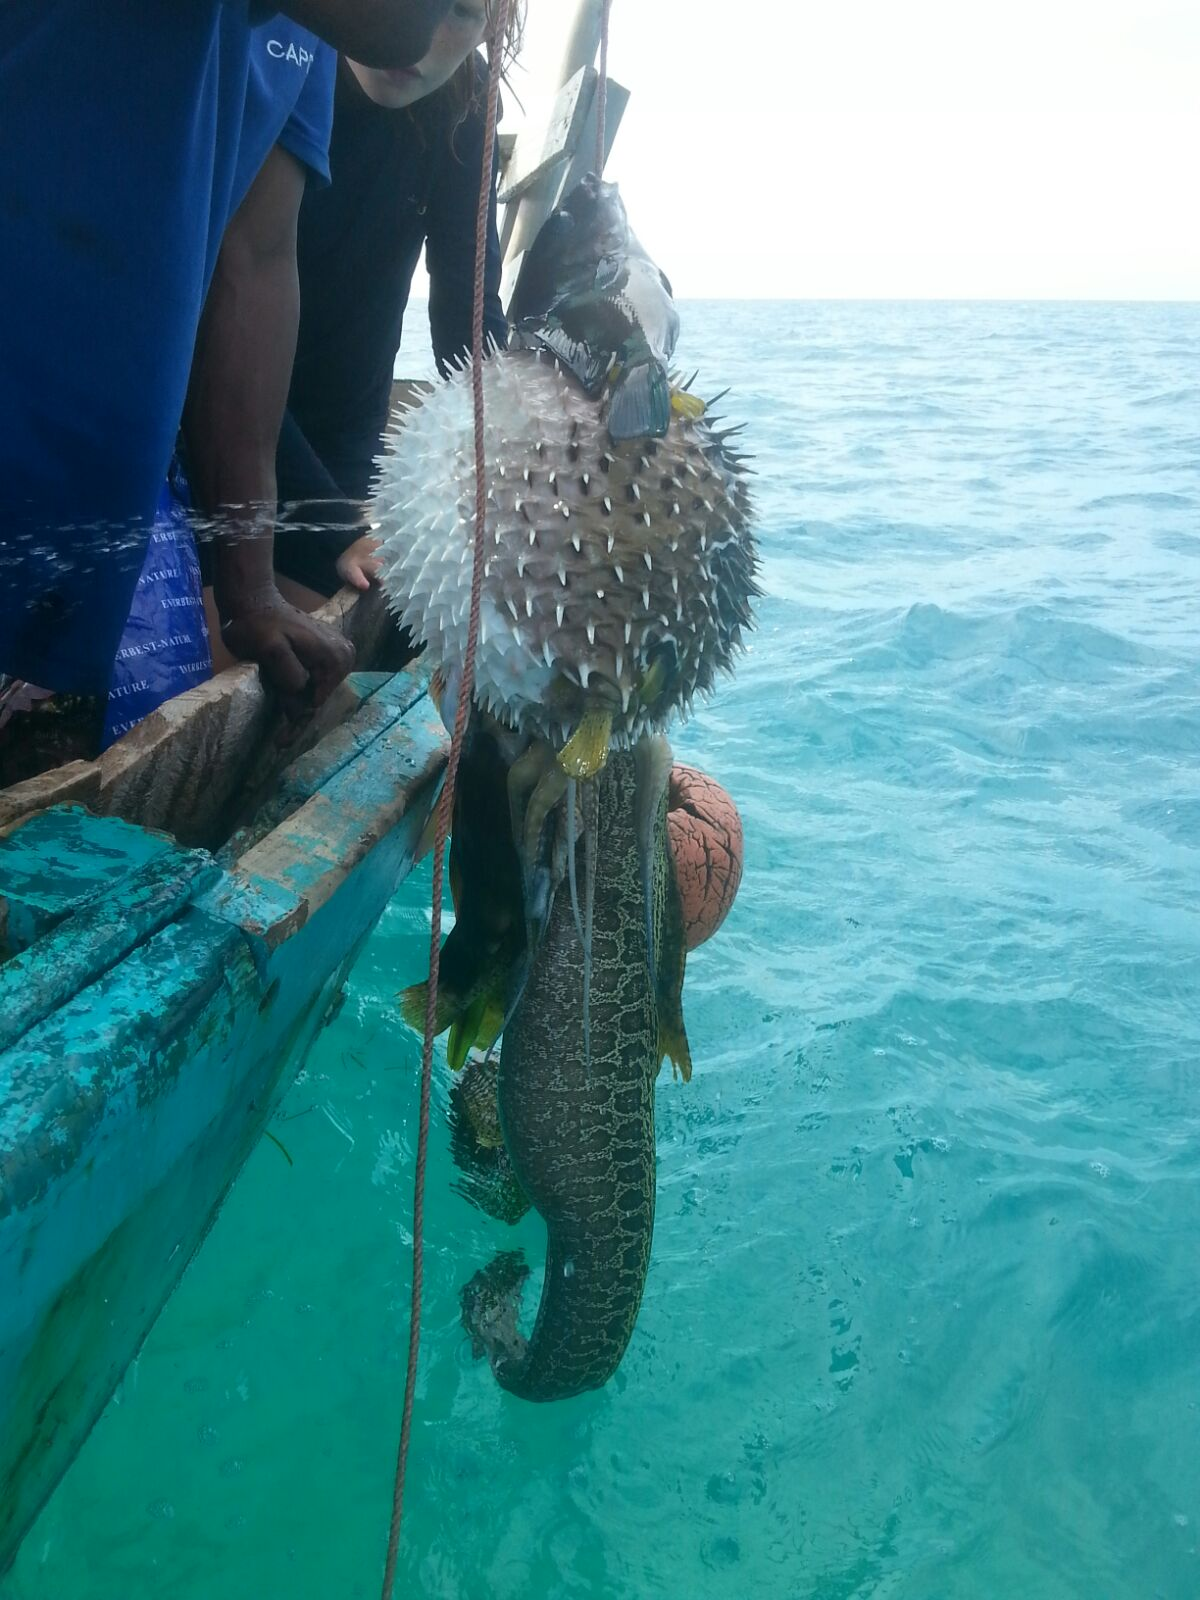 Drawn starfish saltwater fish Out was tide next the